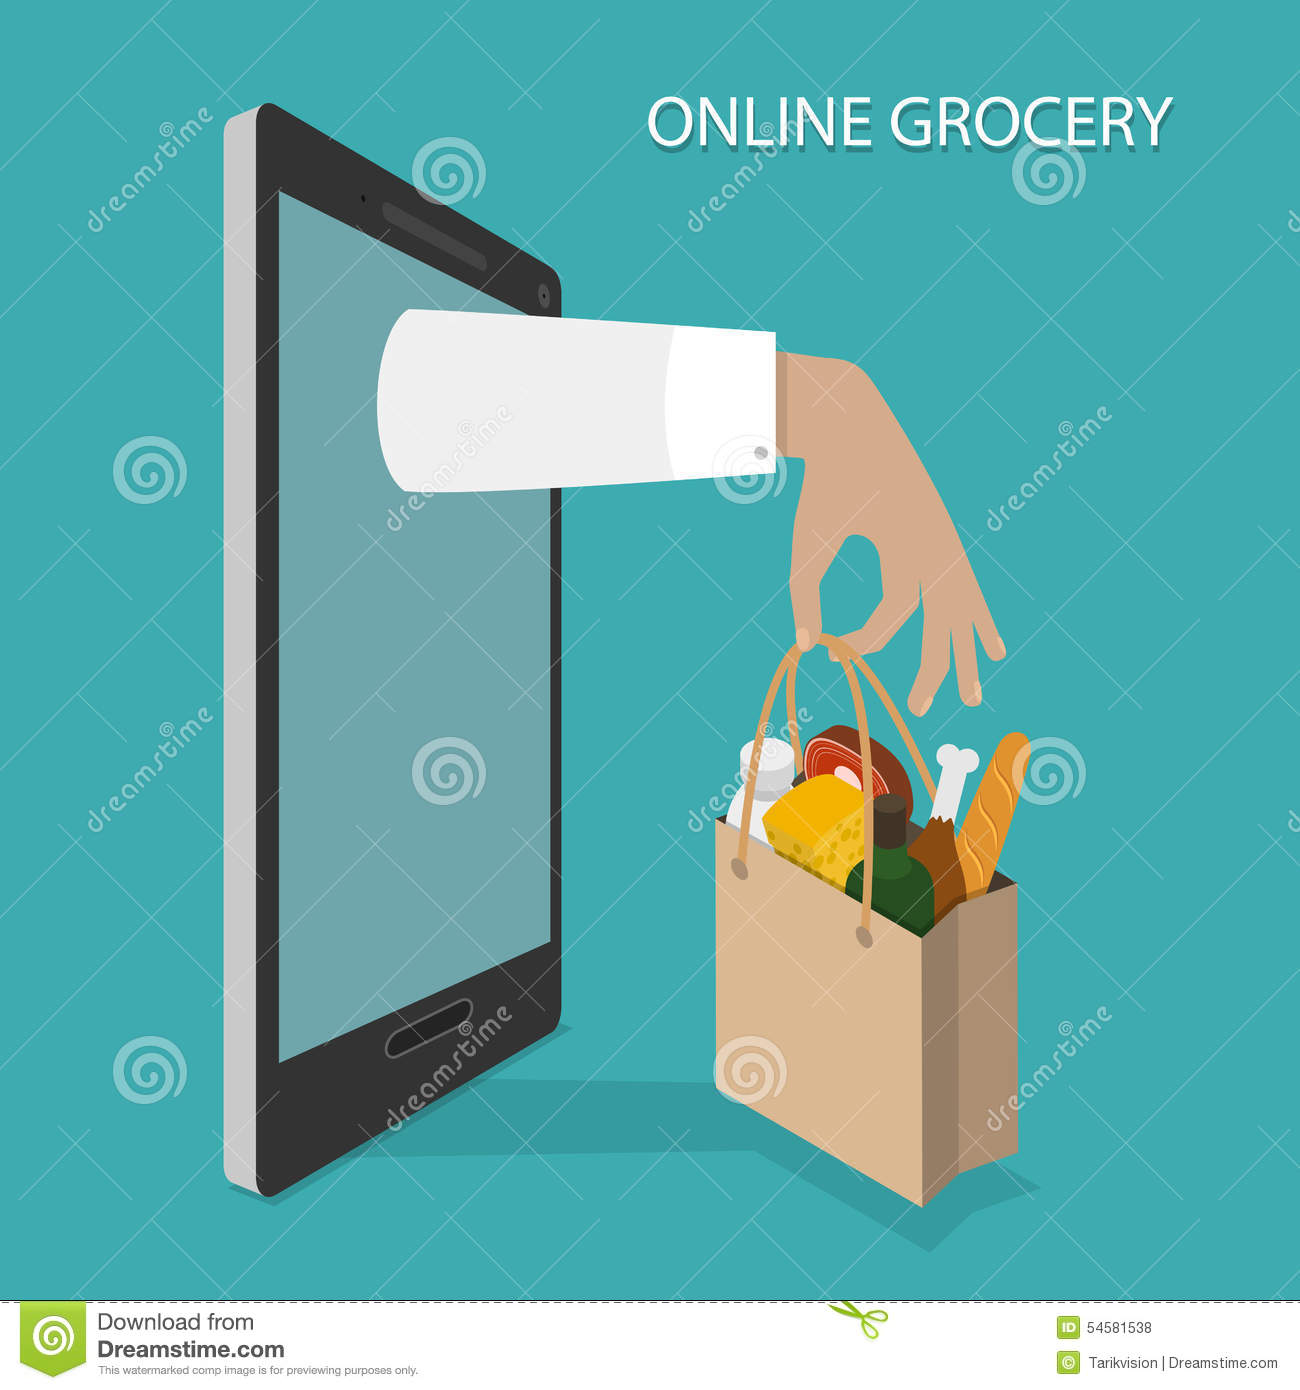 online-grocery-ordering-delivery-vector-concept-flat-isometric-illustraion-hand-bag-foods-appeared-smartphone-54581538.jpg